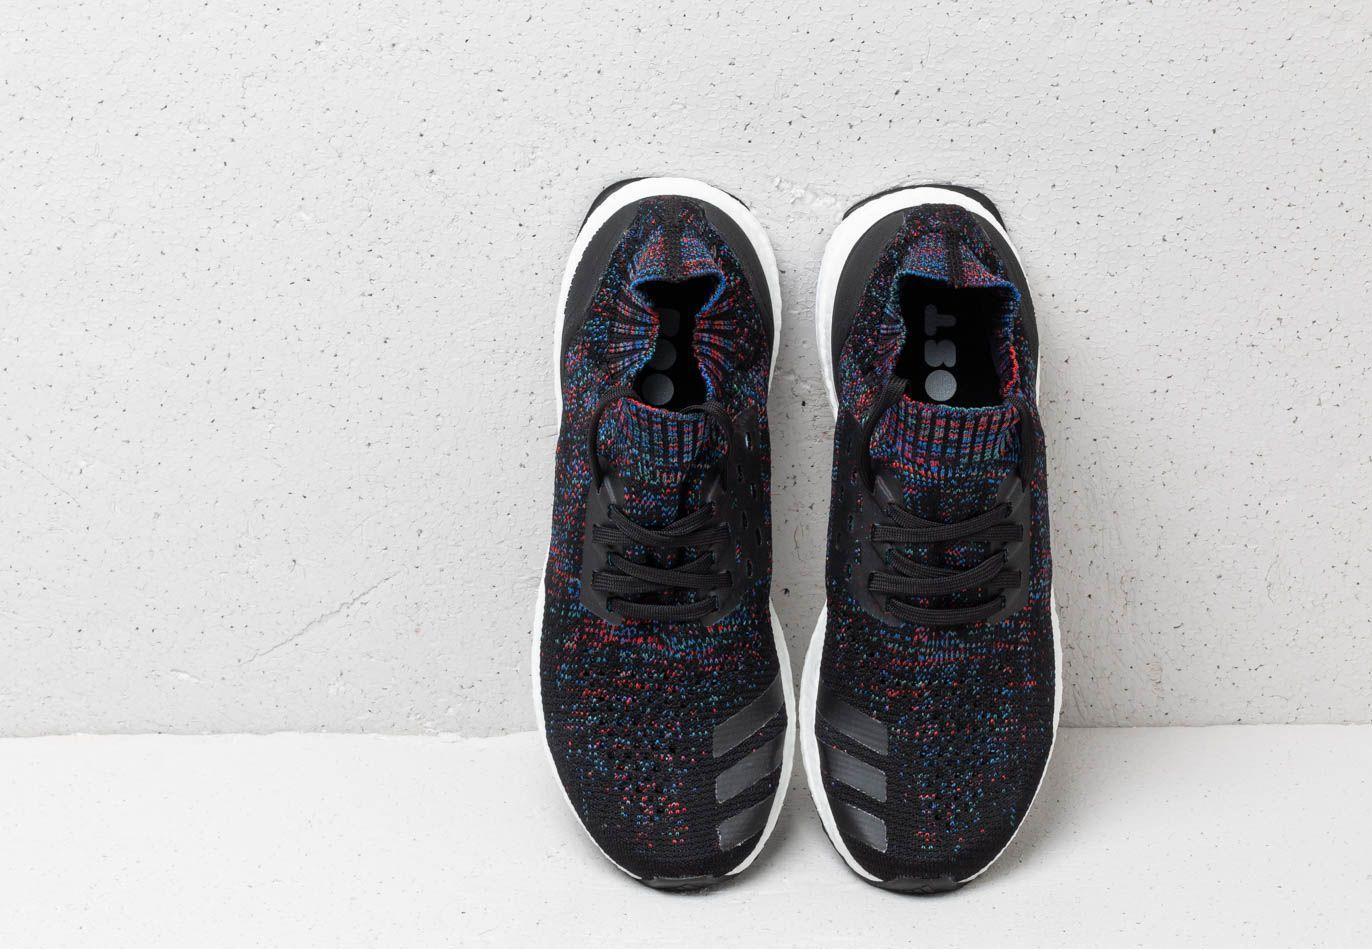 Adidas Ultraboost Uncaged Core Black/ Active Red/ Blue